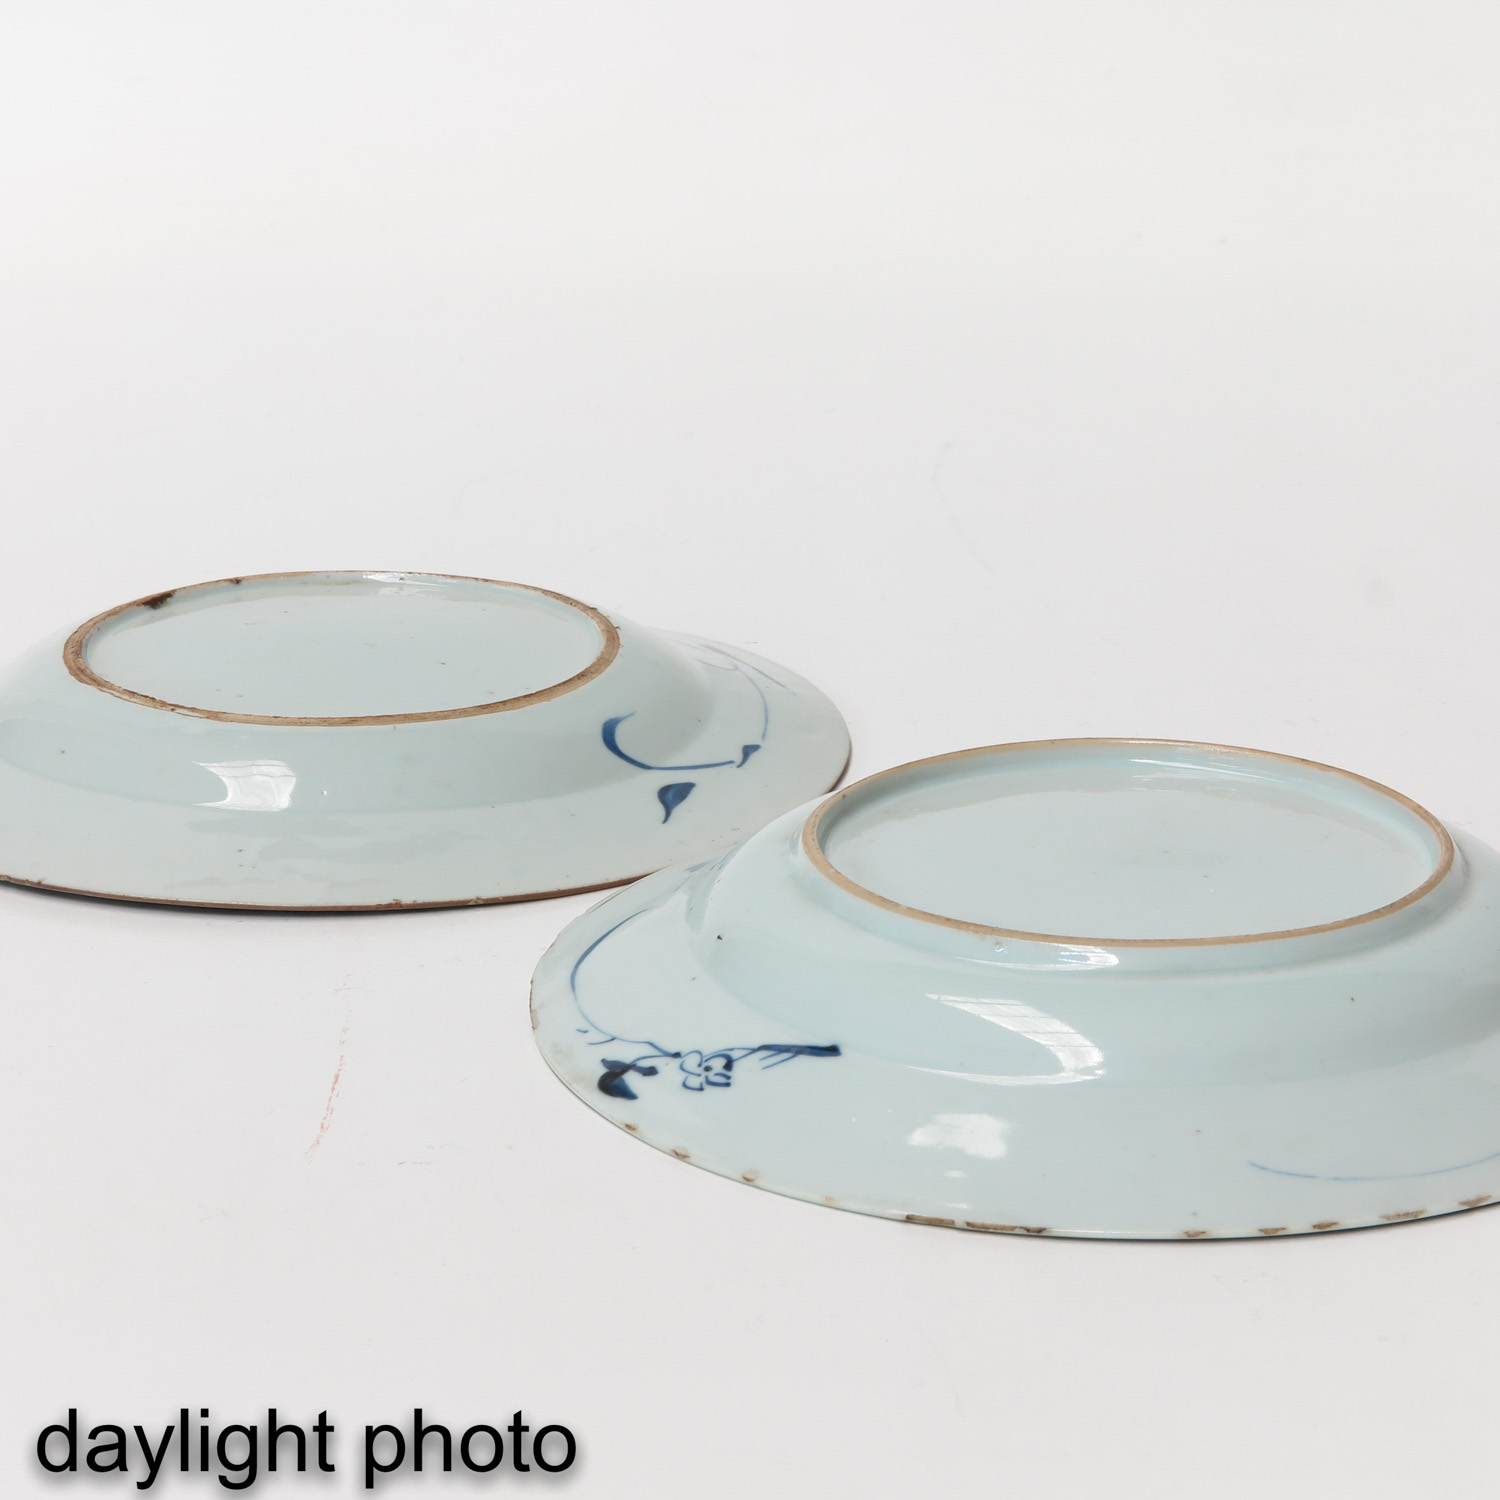 A Series of 5 Blue and White Plates - Image 8 of 10